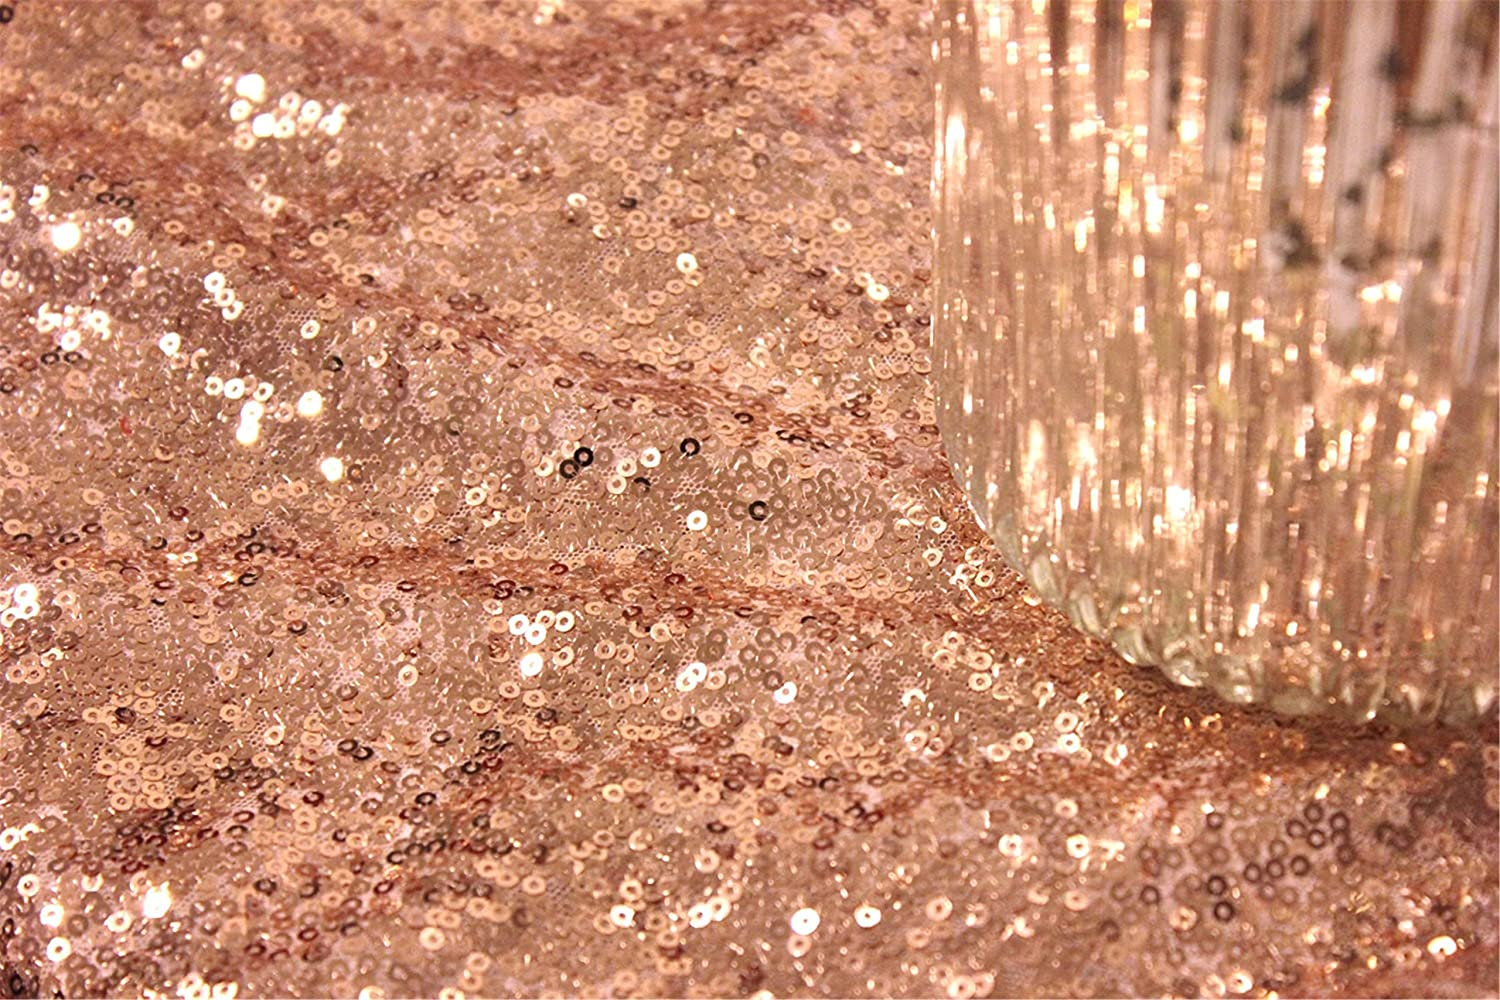 Amazon.com: QueenDream 50x80 Rectangle Sequin Tablecloth-Rose Gold: Home & Kitchen